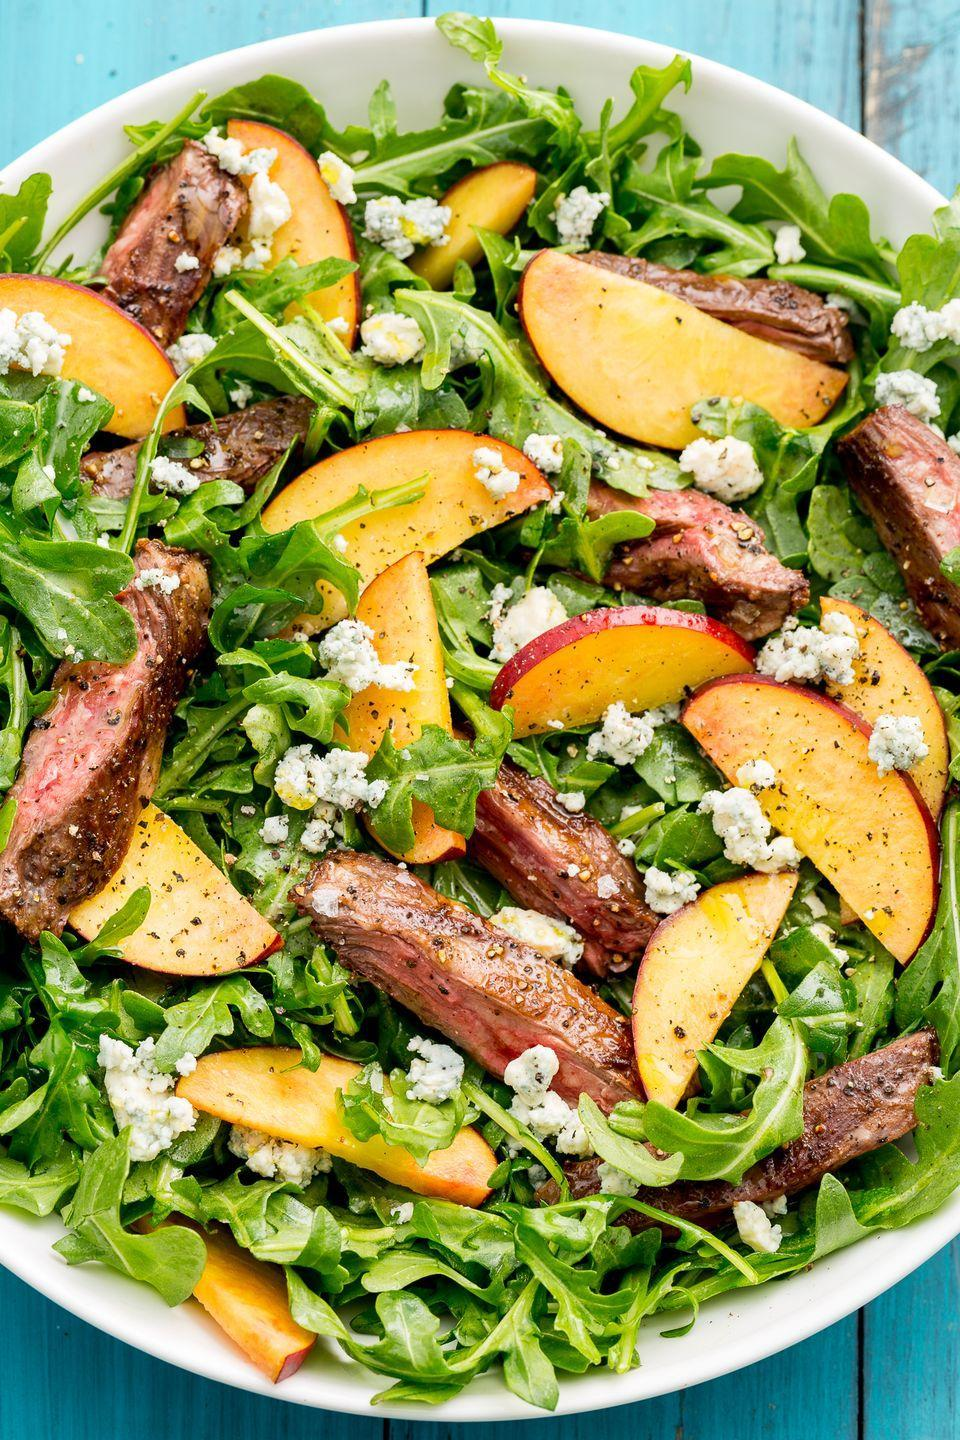 """<p>Peppery arugula is the perfect vessel for this savory-sweet combo.</p><p>Get the recipe from <a href=""""https://www.delish.com/cooking/recipe-ideas/recipes/a47340/balsamic-grilled-steak-salad-with-peaches-recipe/"""" rel=""""nofollow noopener"""" target=""""_blank"""" data-ylk=""""slk:Delish"""" class=""""link rapid-noclick-resp"""">Delish</a>. </p>"""